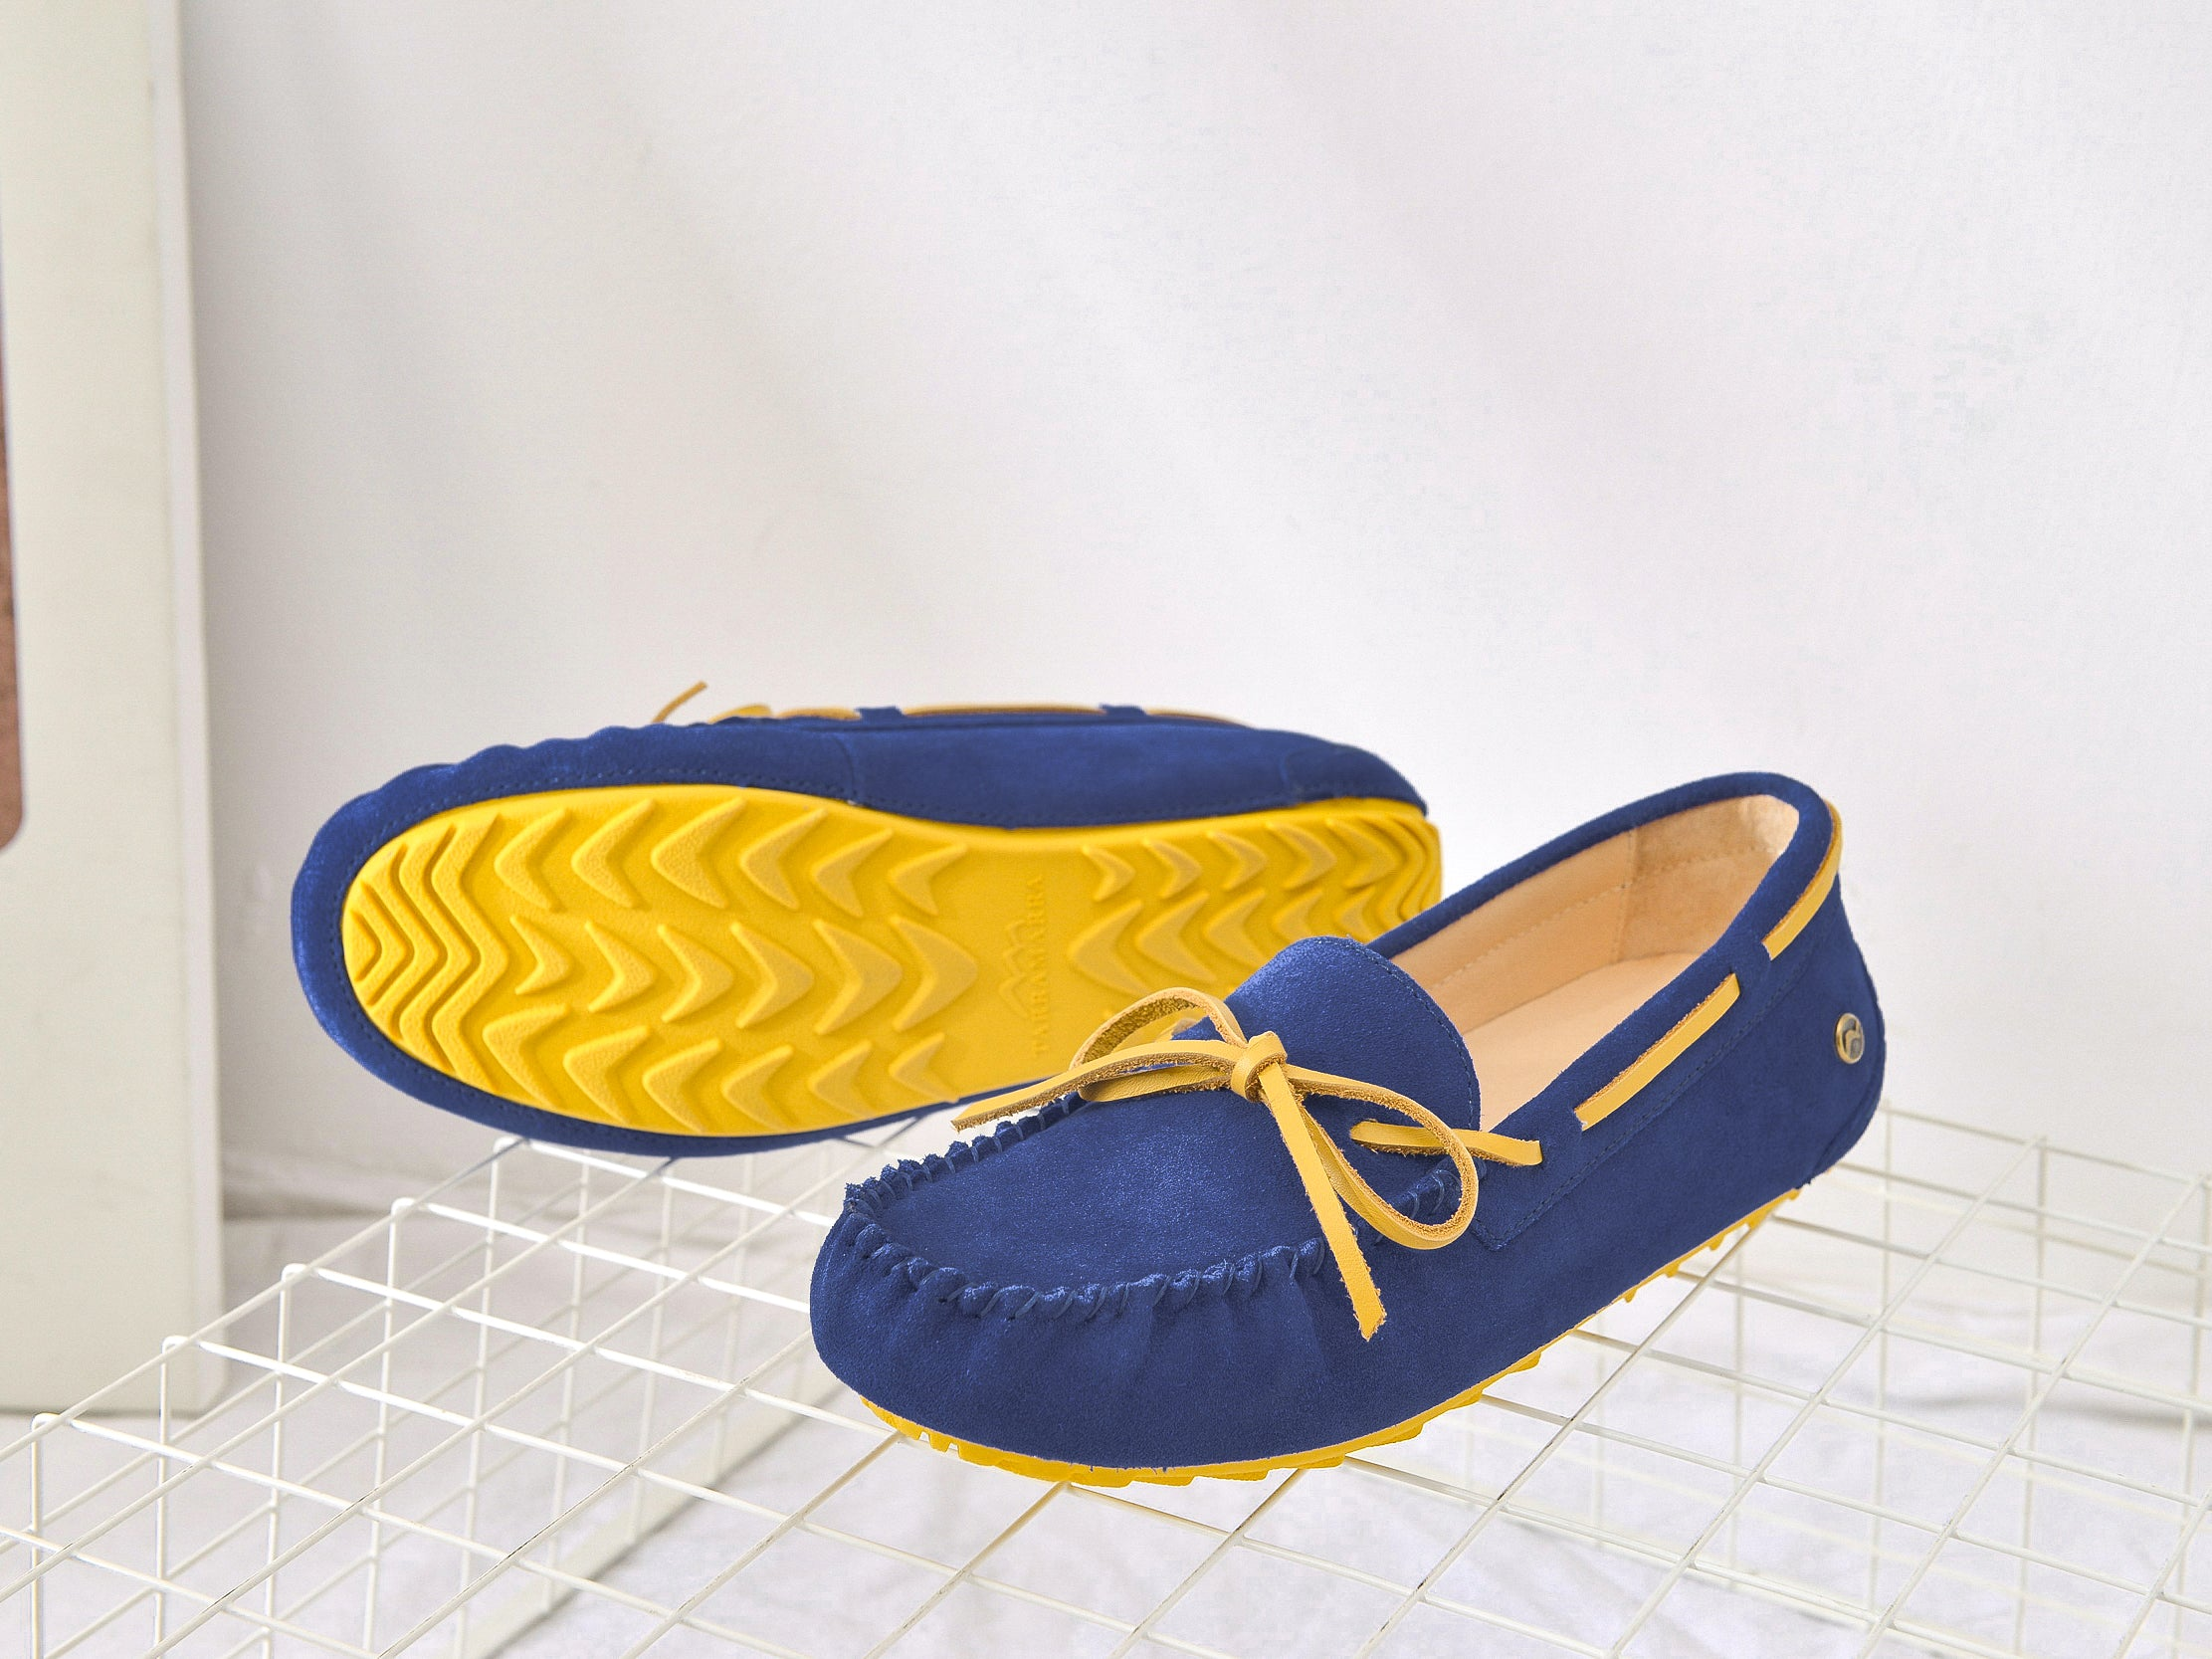 cancer council moccasins